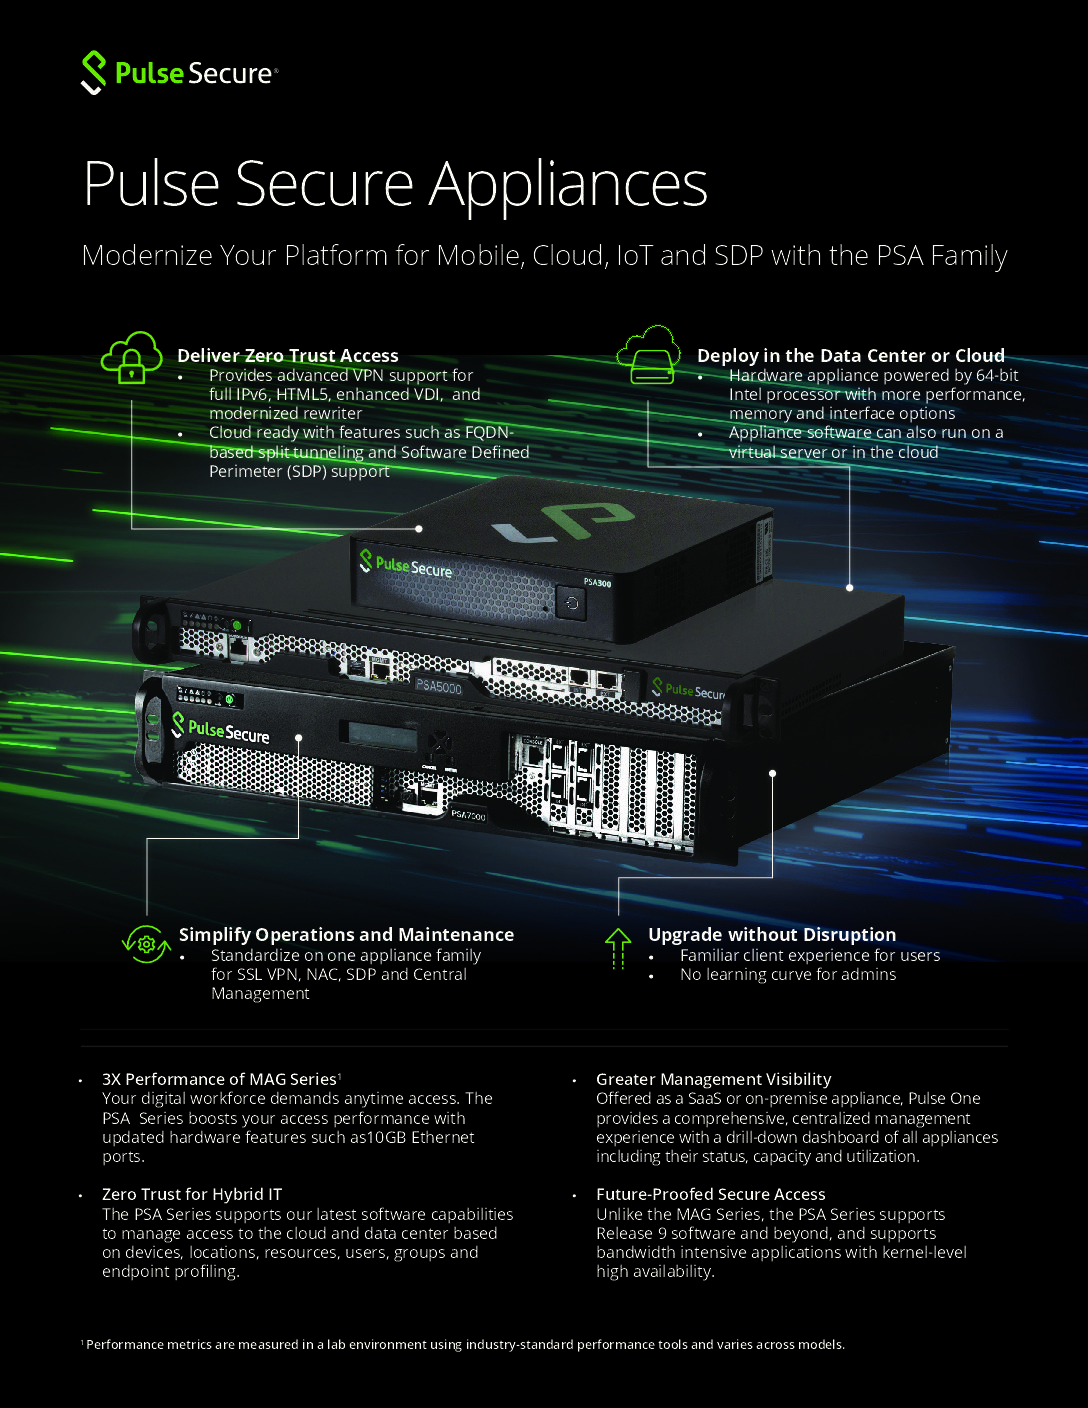 Modernize Your Access for Mobile, Cloud, IoT and SDP with the PSA